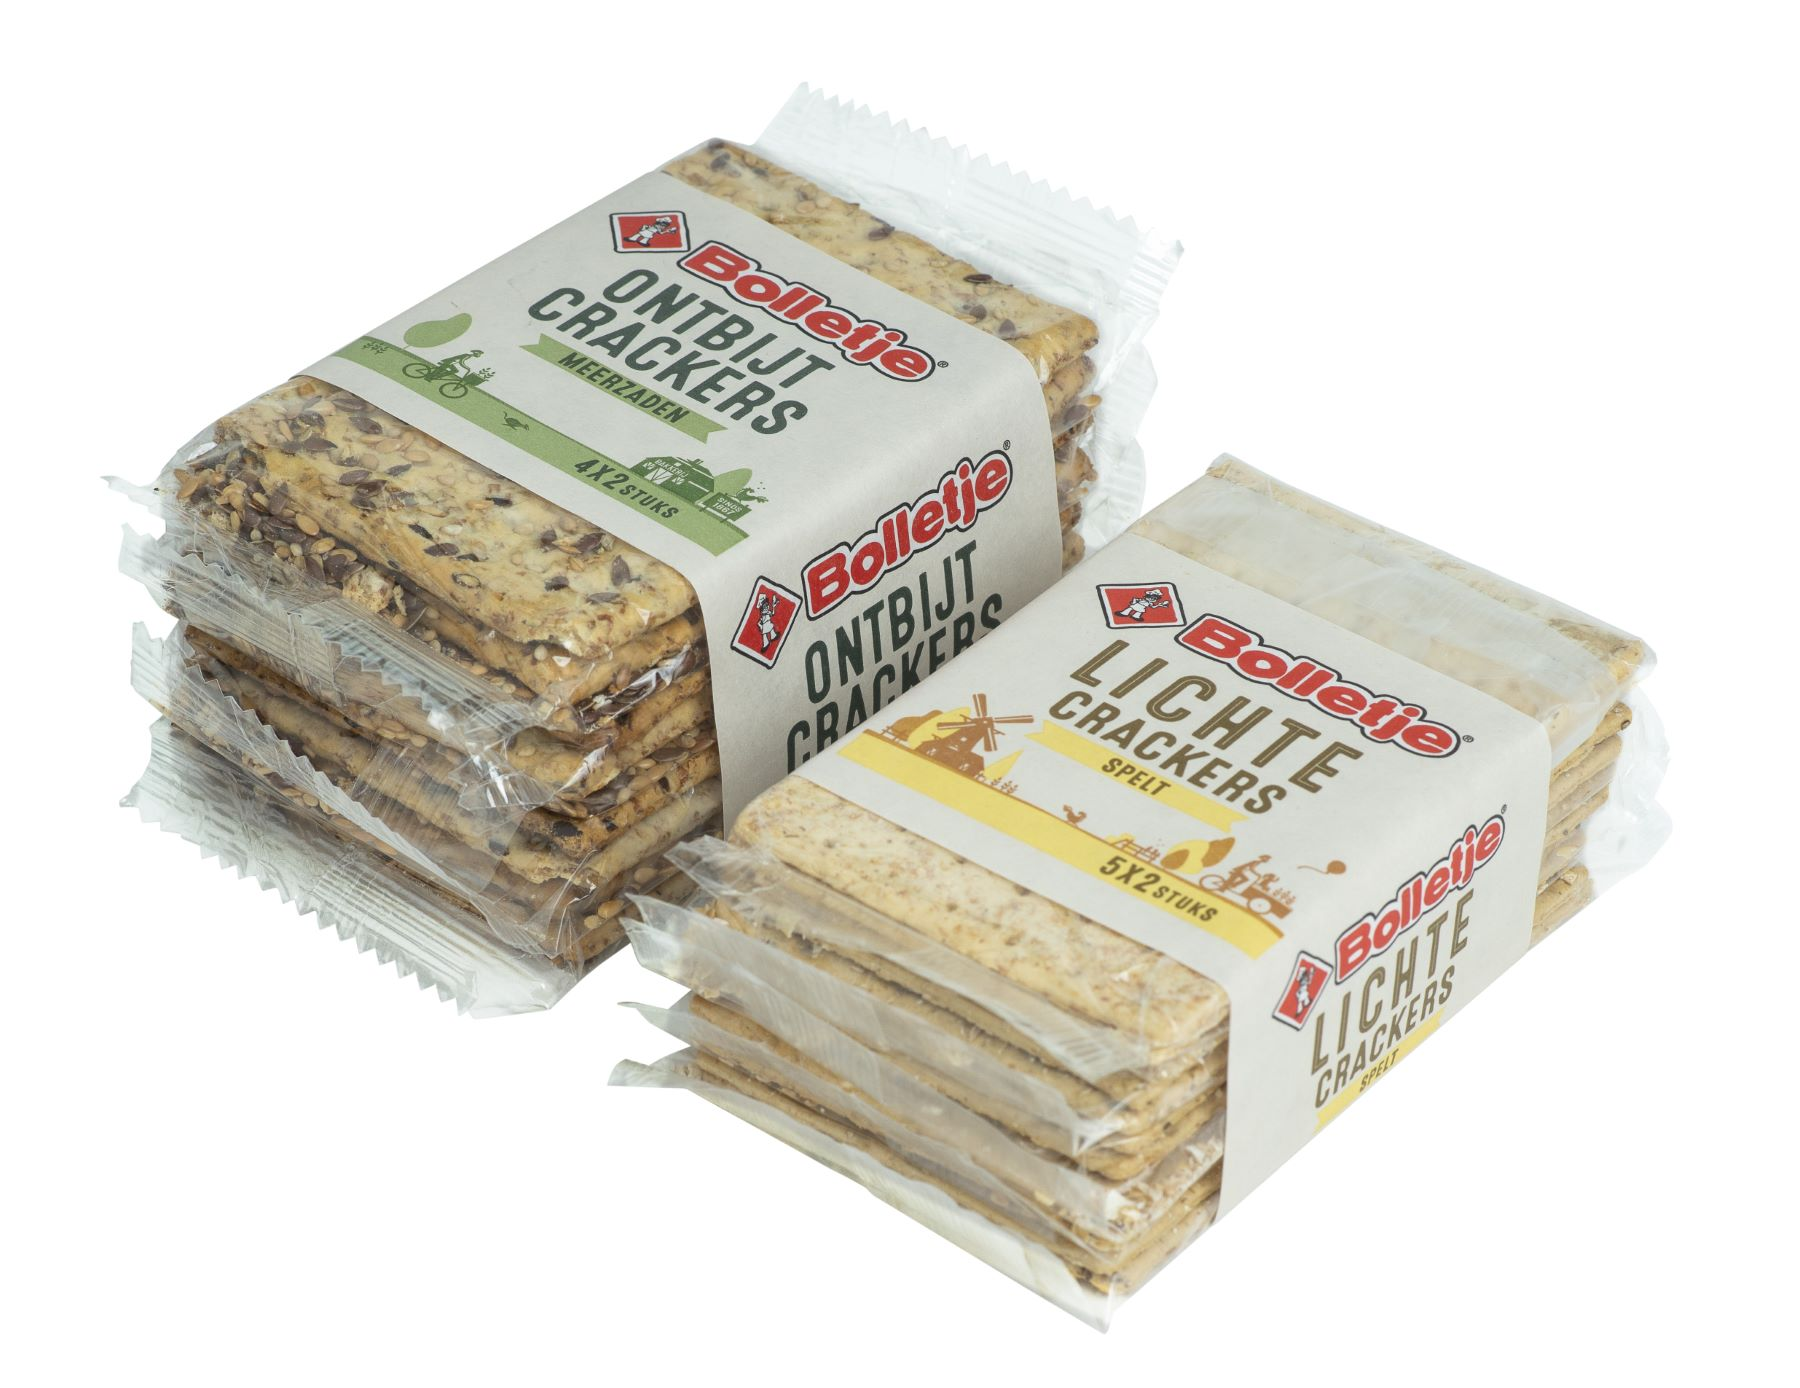 two-bundles-with-crackers-from-Bolletje-bundled-with-MC-paper-band-1F832FFD26